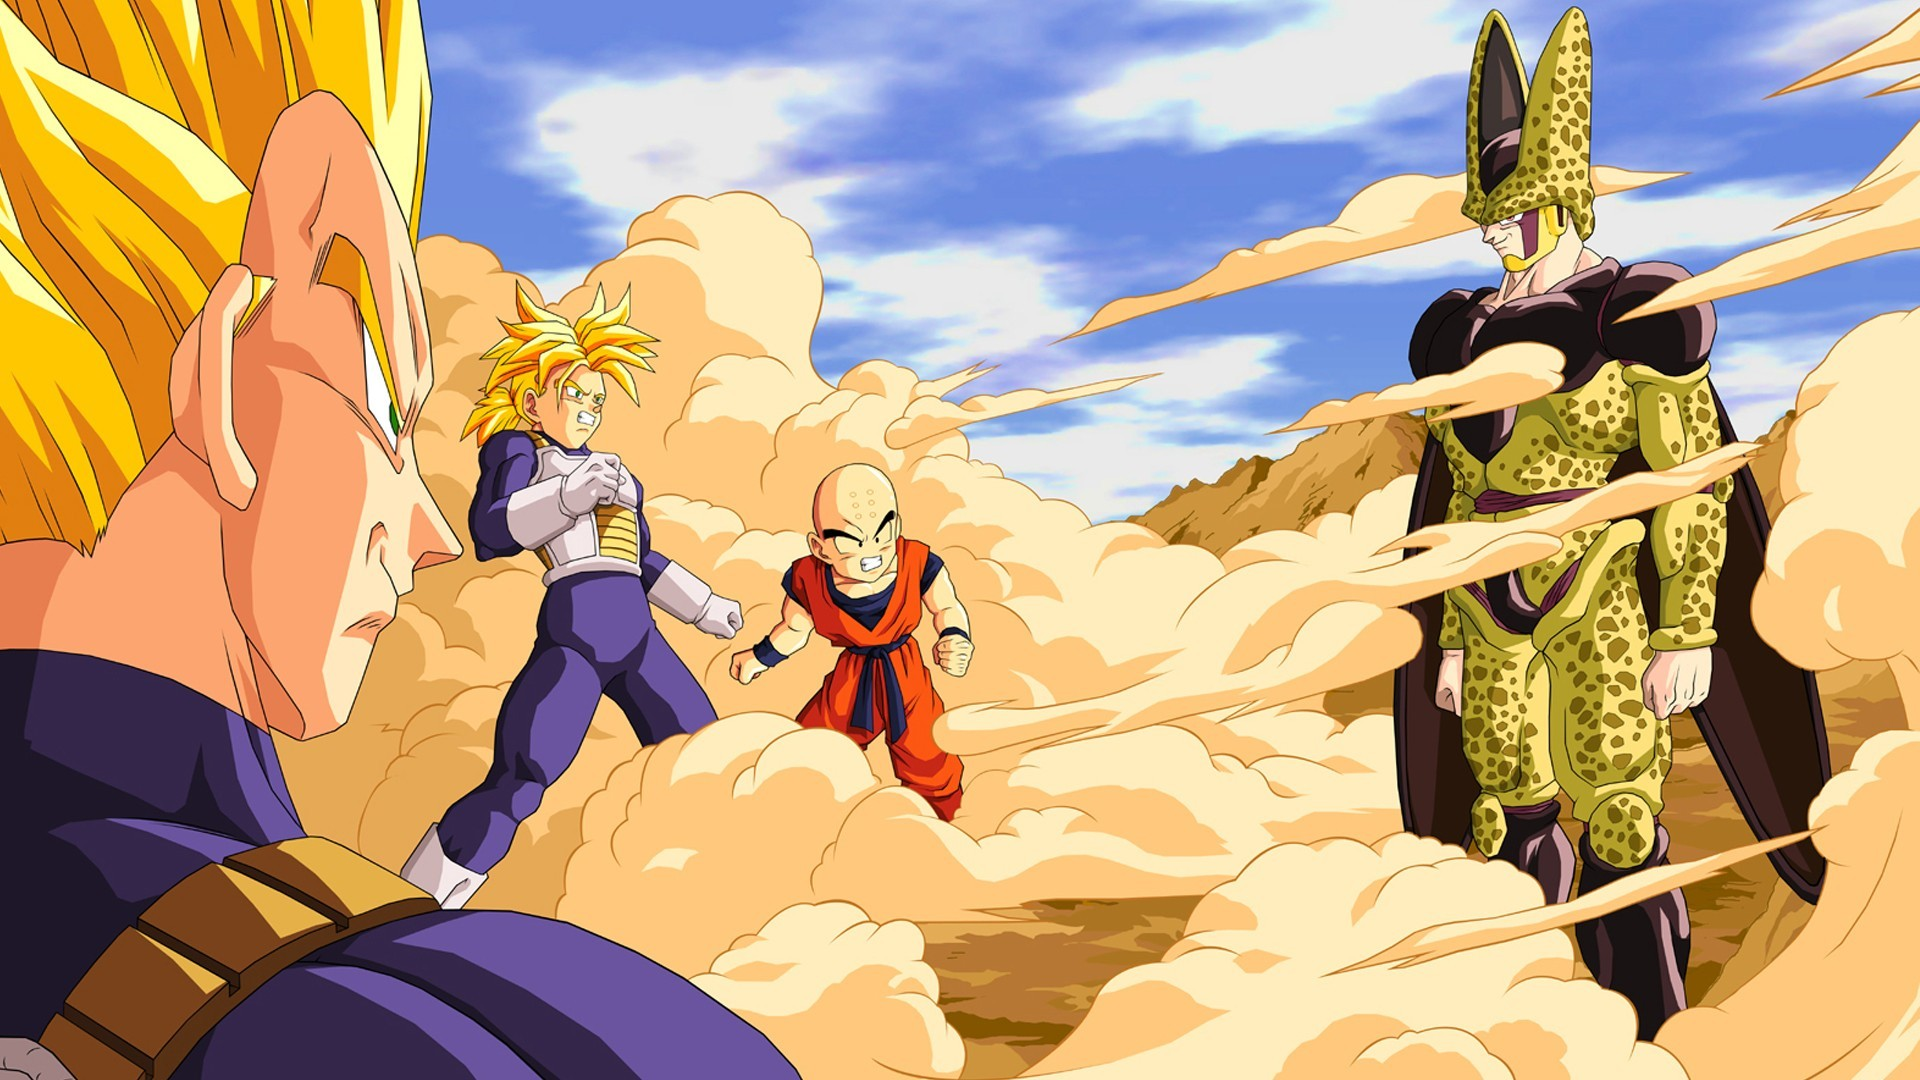 Res: 1920x1080, dragon ball super saiyan cell character trunks character vegeta krillin  perfect cell anime wallpaper and background